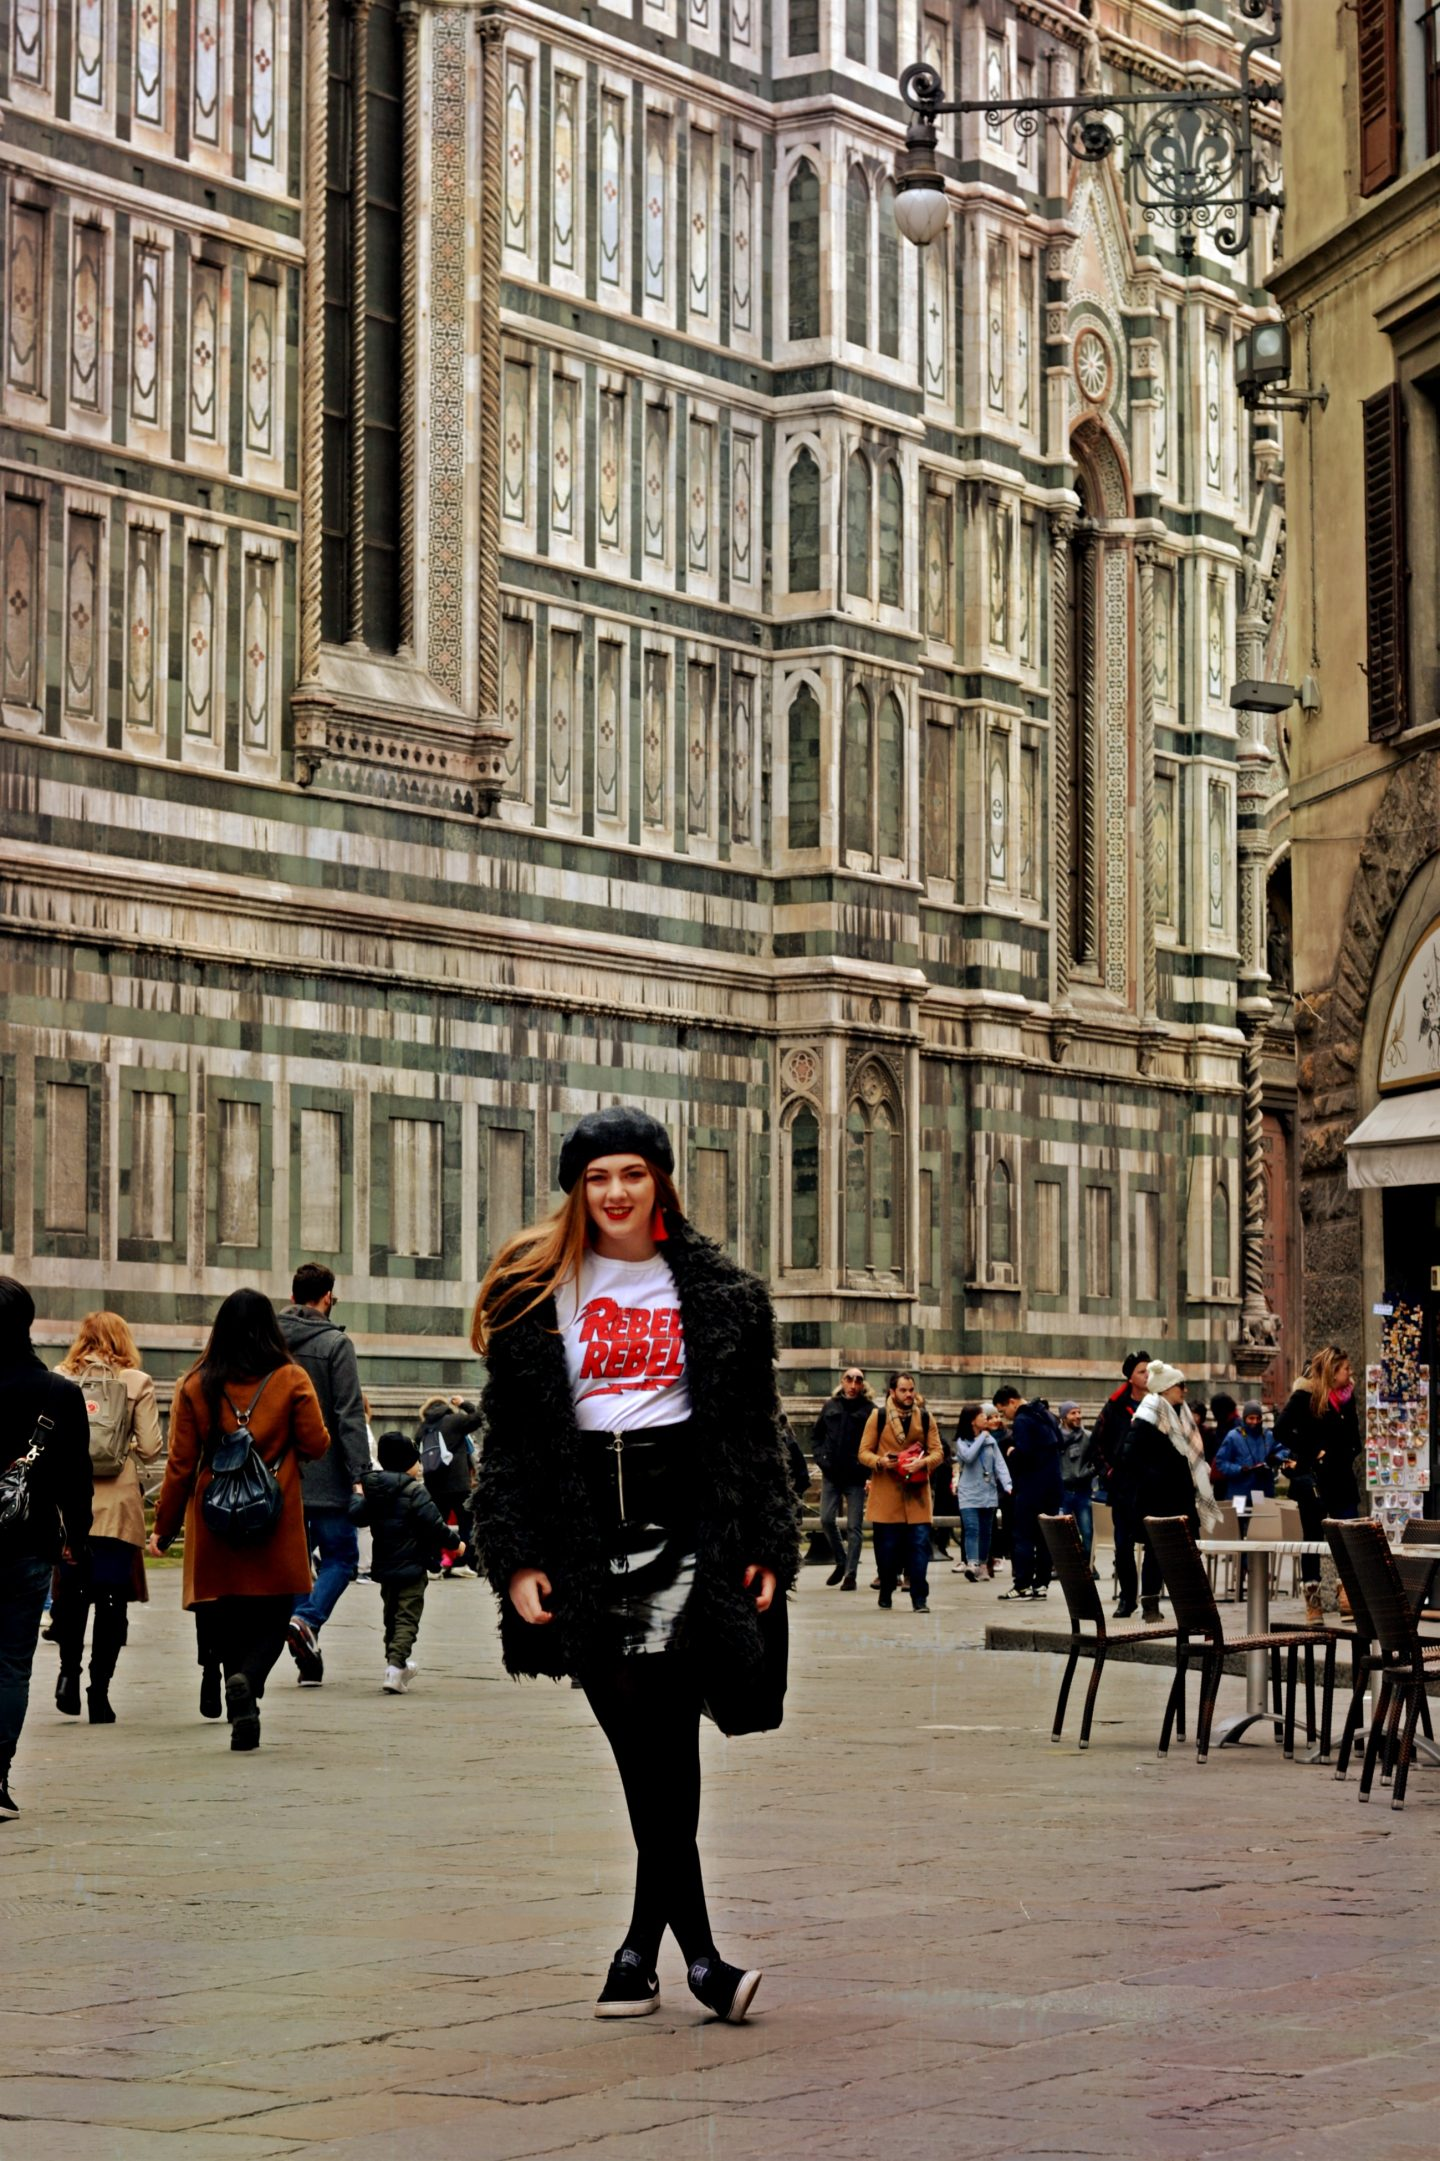 Rebel Rebel in Florence